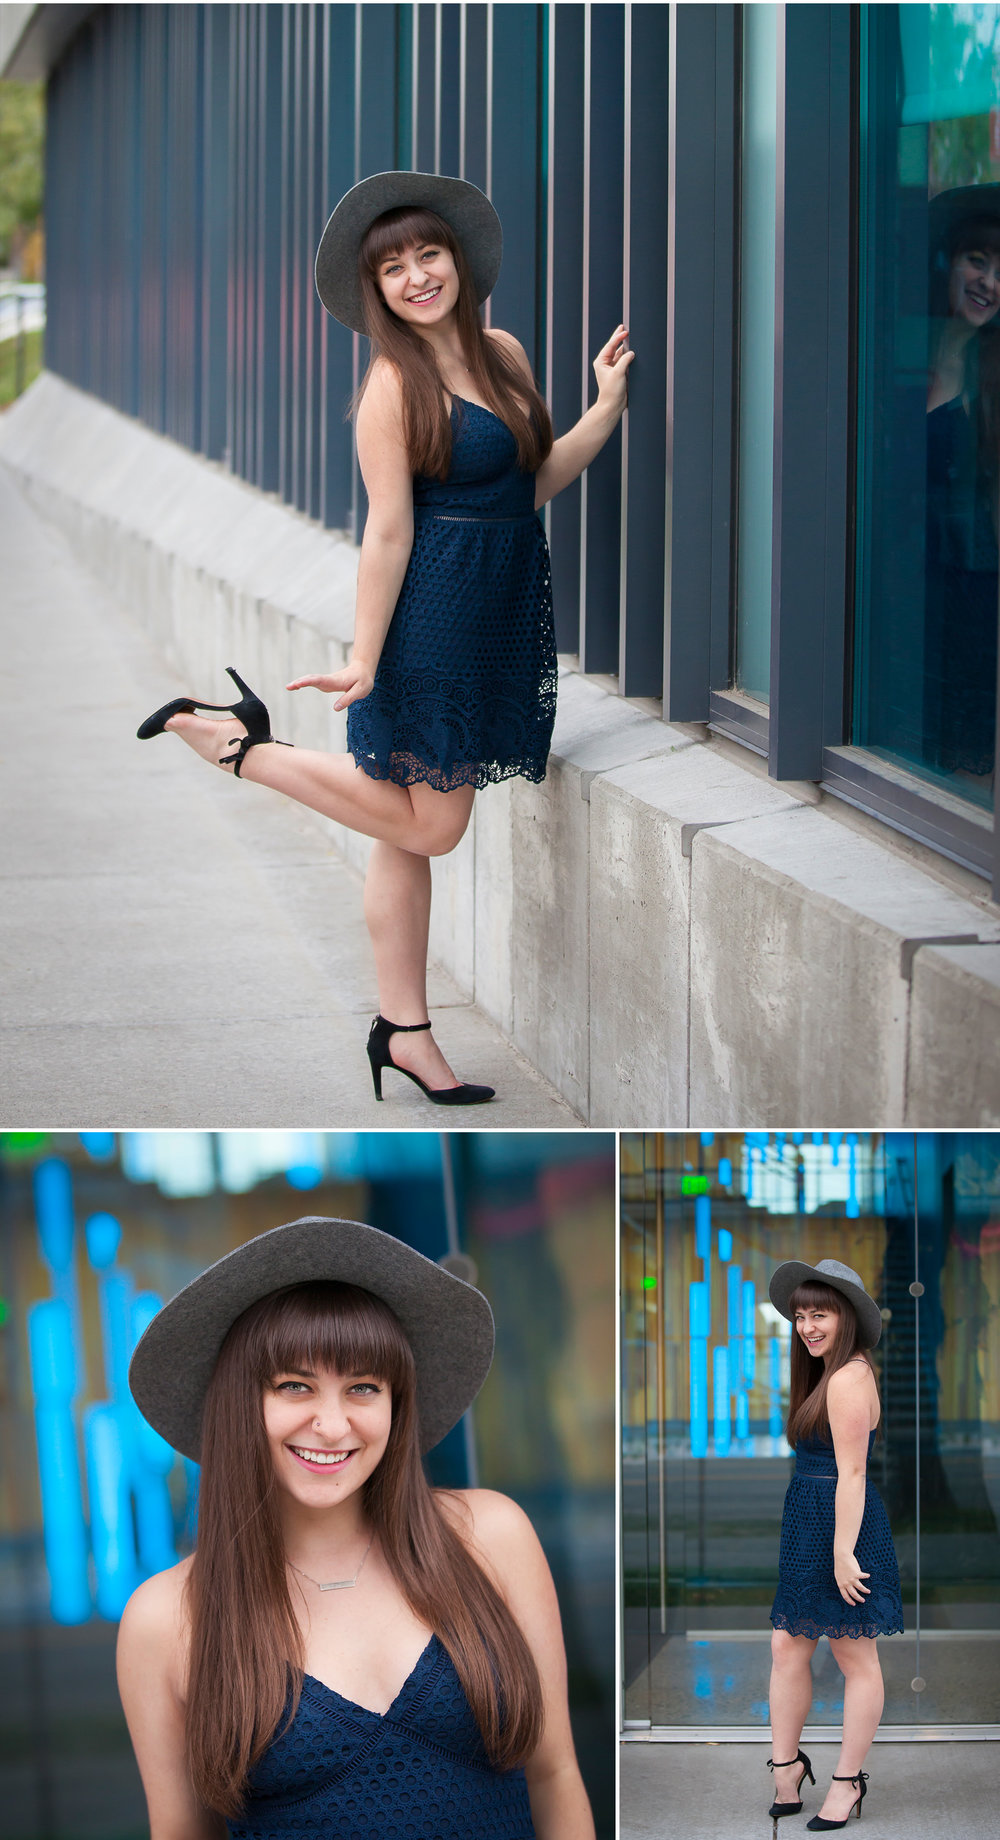 Fashion Inspired Urban Senior Portraits in the streets of Denver's Arts District with photographer Jennifer Koskinen, Merritt Portrait Studio